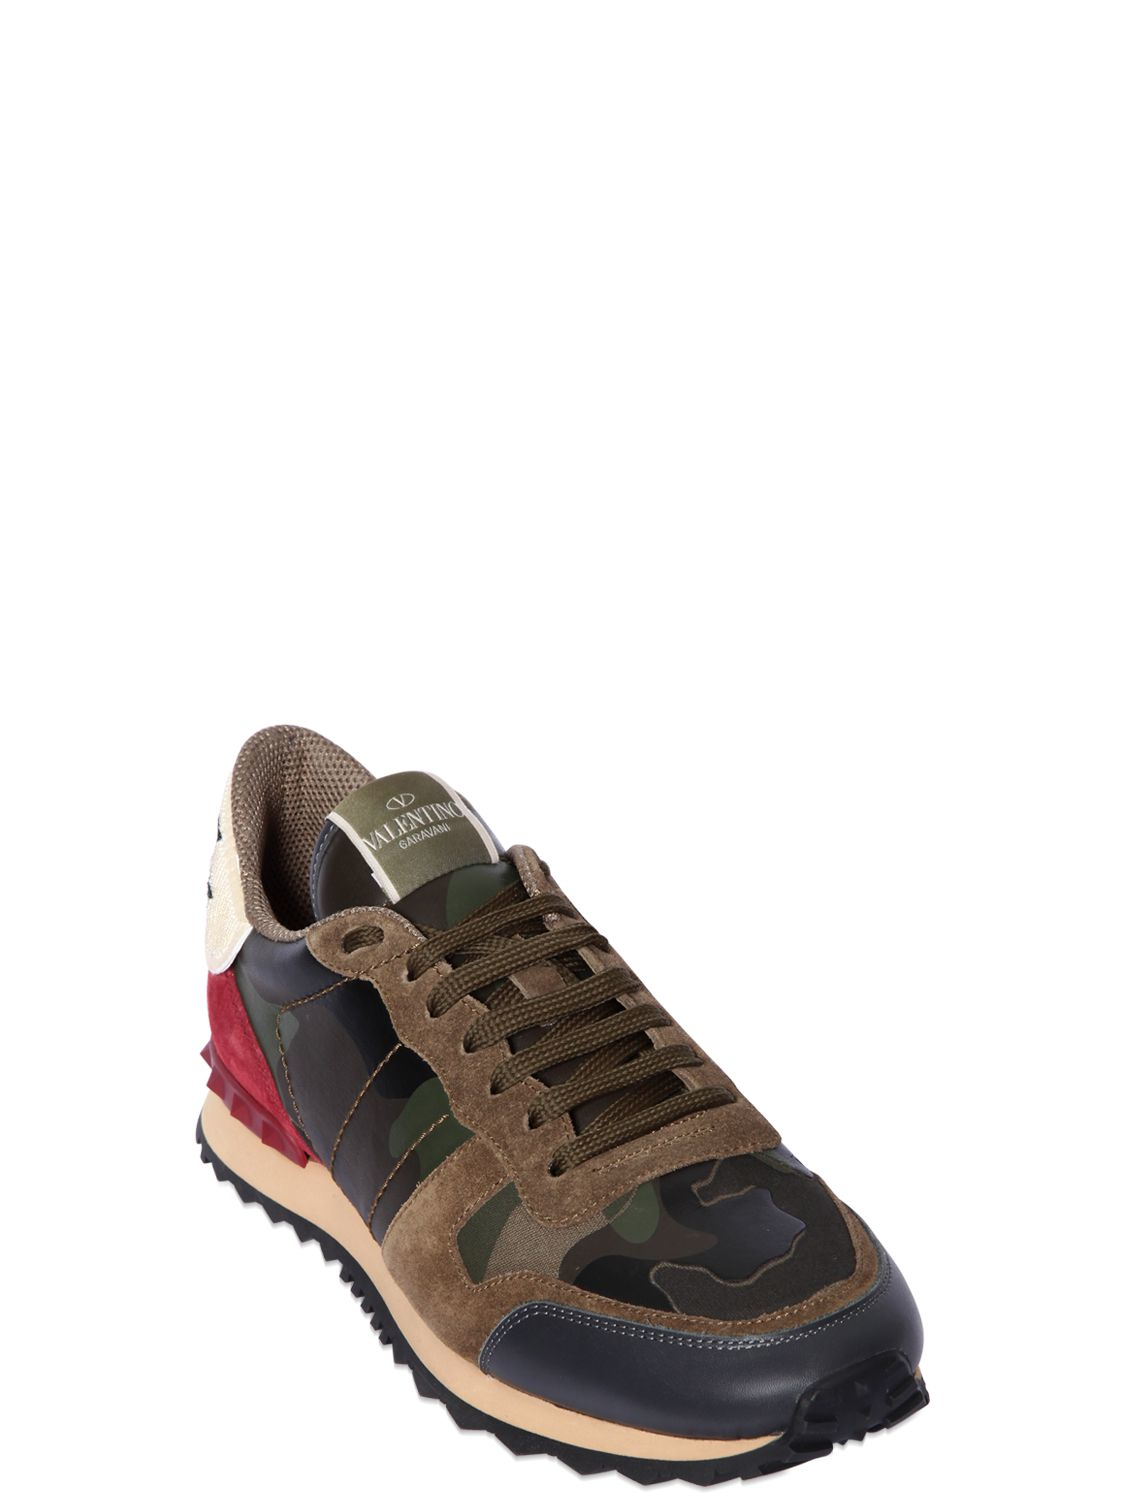 Rubber Rings For Men >> Valentino Rockrunner Beaded Eagle Camo Sneakers for Men | Lyst